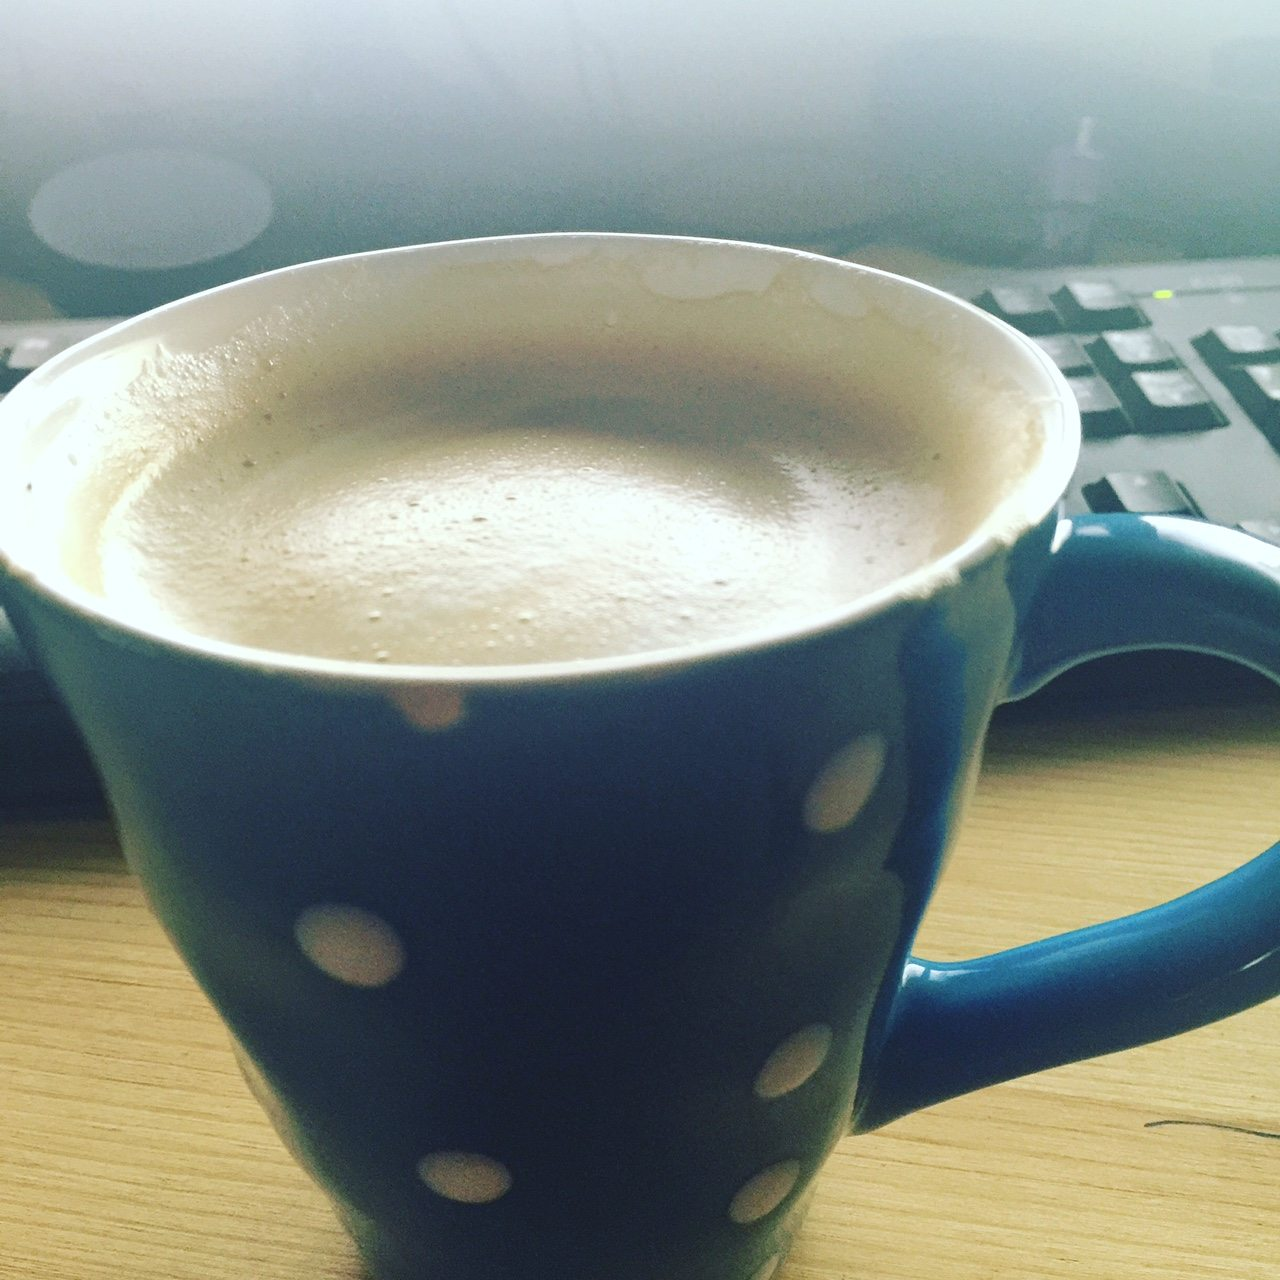 Finally getting a hot cup of coffee. Also managed to get some work done too!